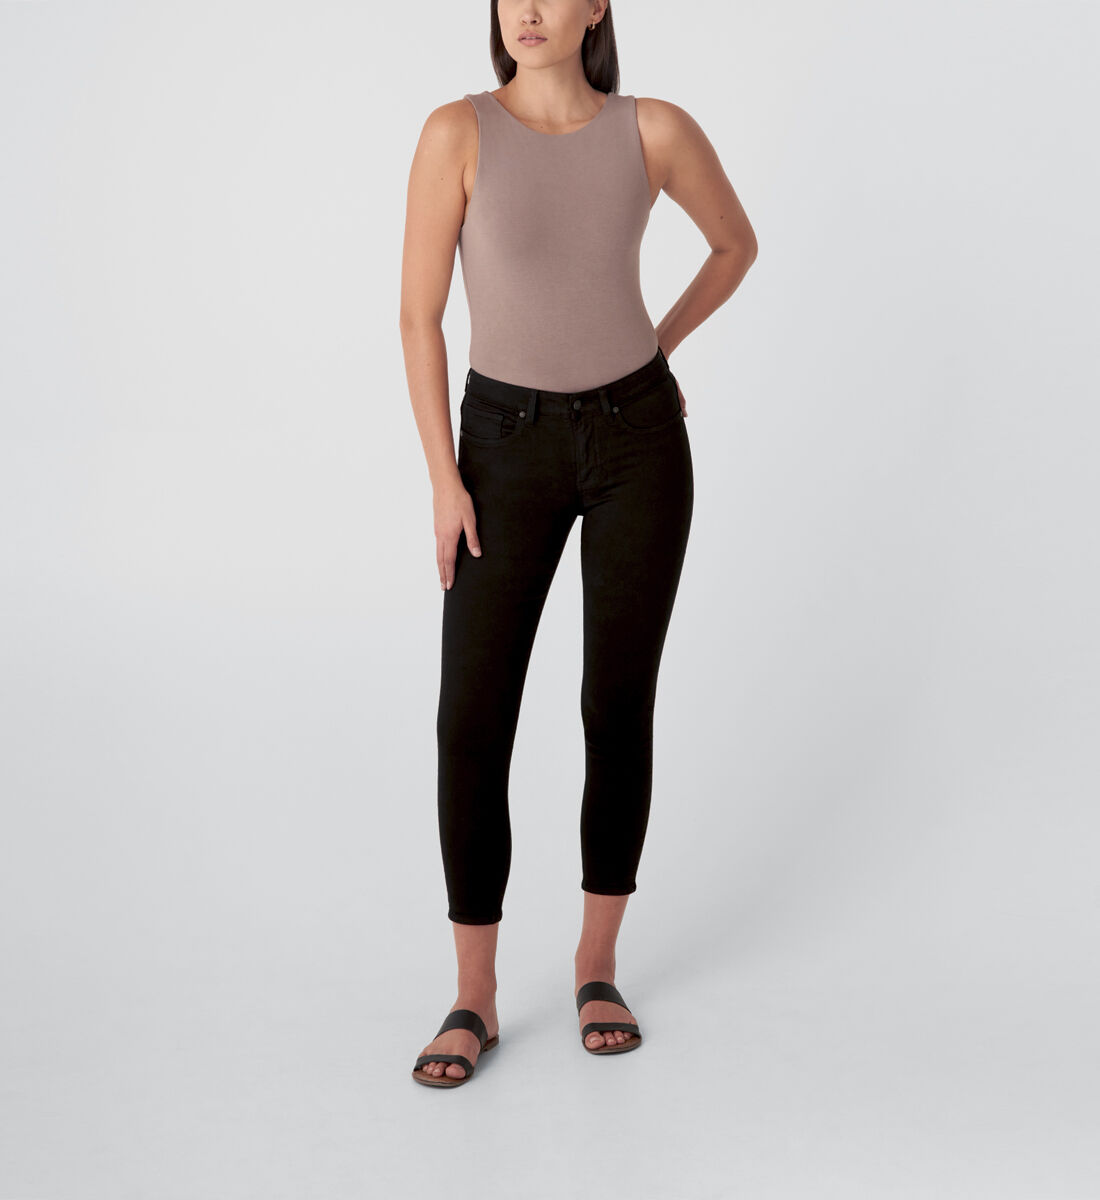 Most Wanted Mid Rise Skinny Jeans,Black Front